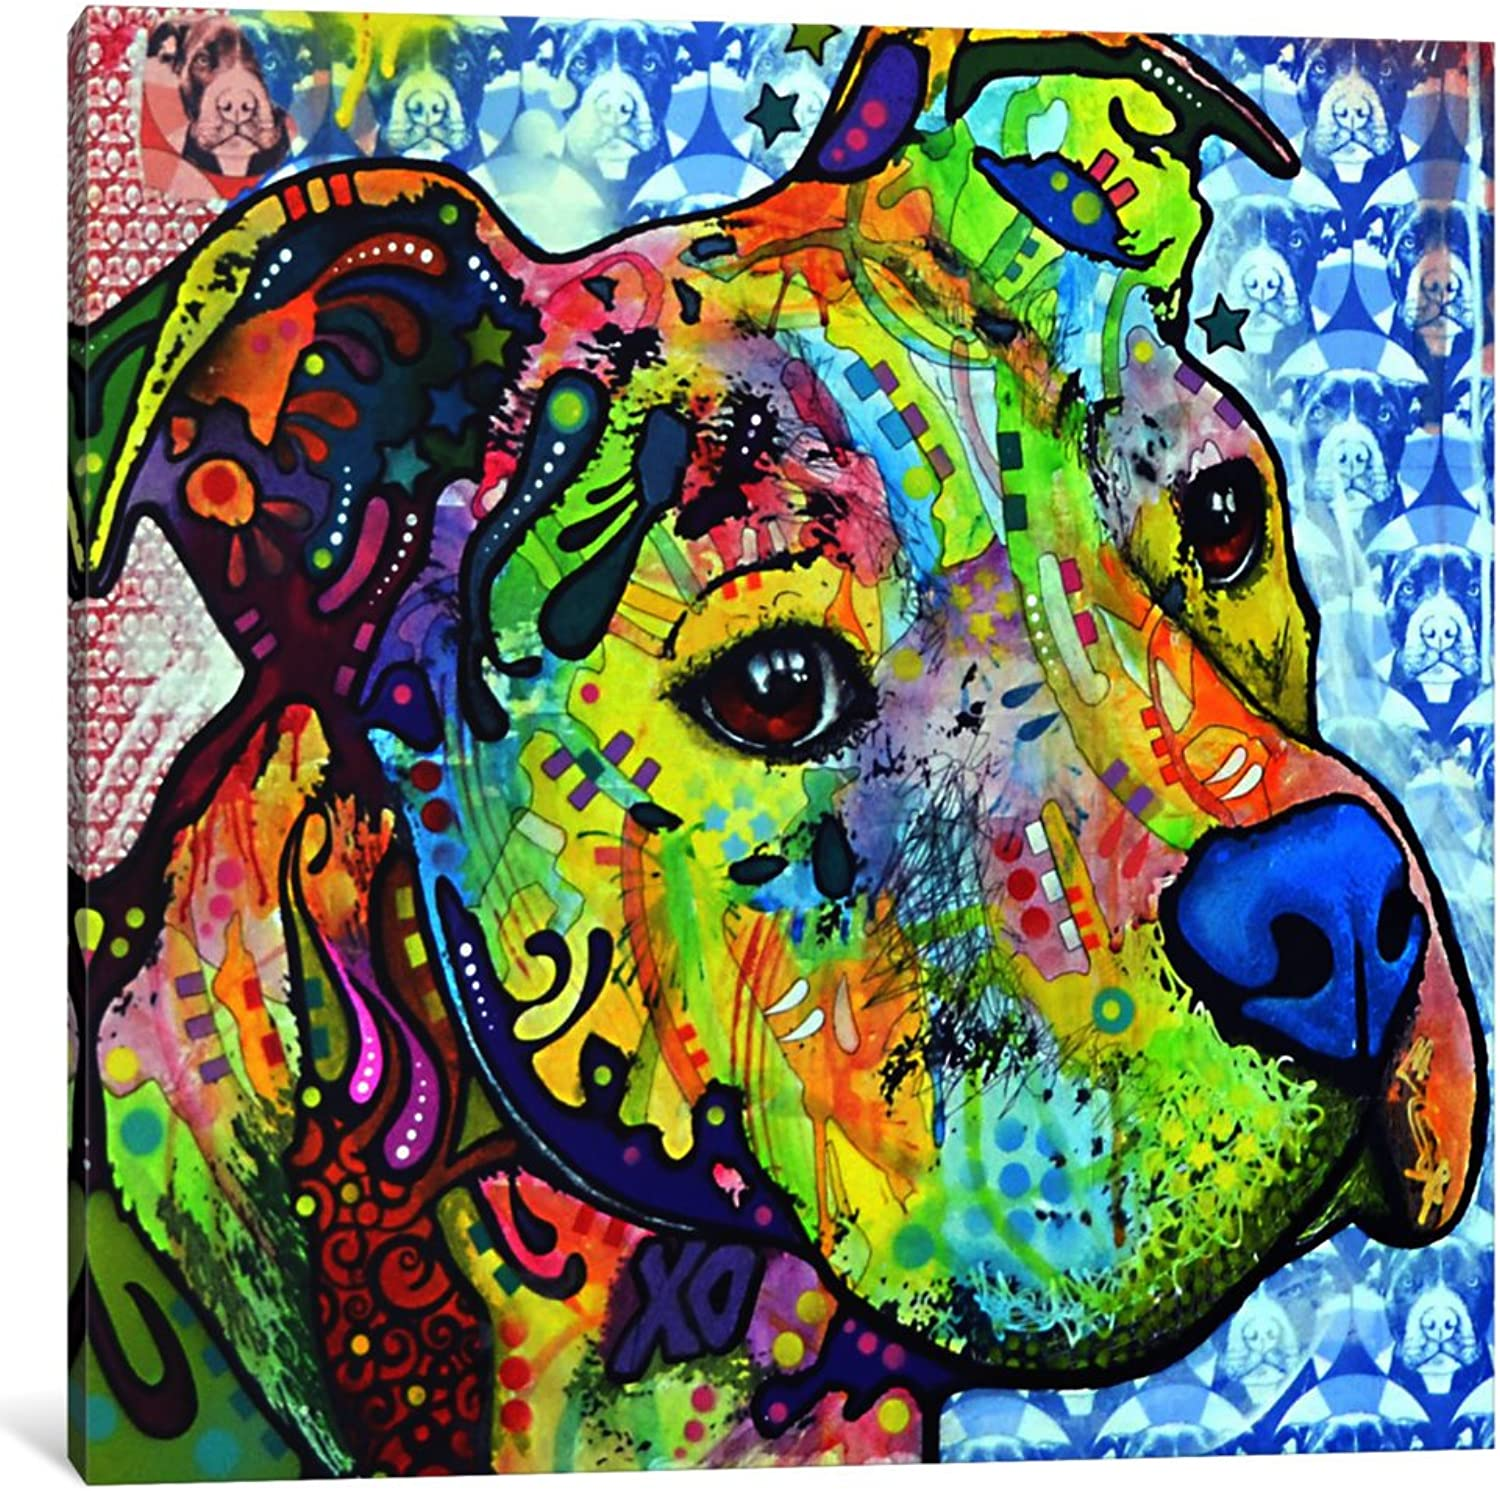 ICanvasART 1-Piece Thoughtful Pit Bull This Years I Canvas Print by Dean Russo, 0.75 by 12 by 12-Inch